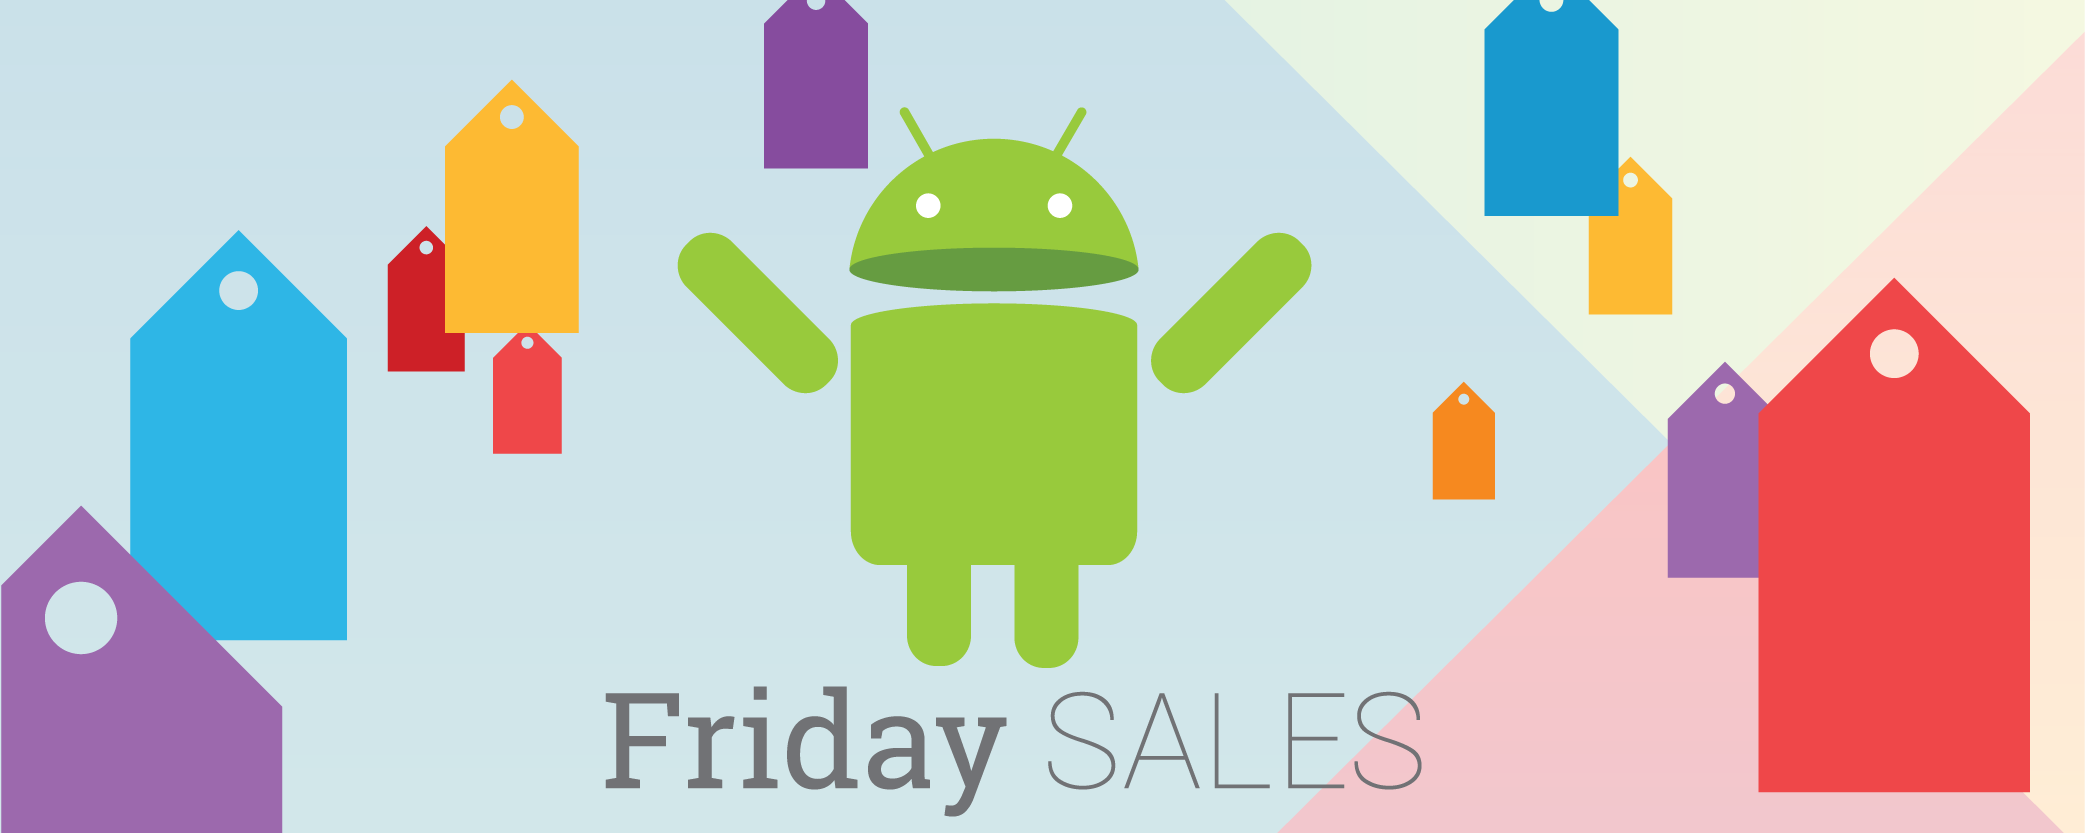 27 temporarily free and 34 on-sale apps and games for Friday